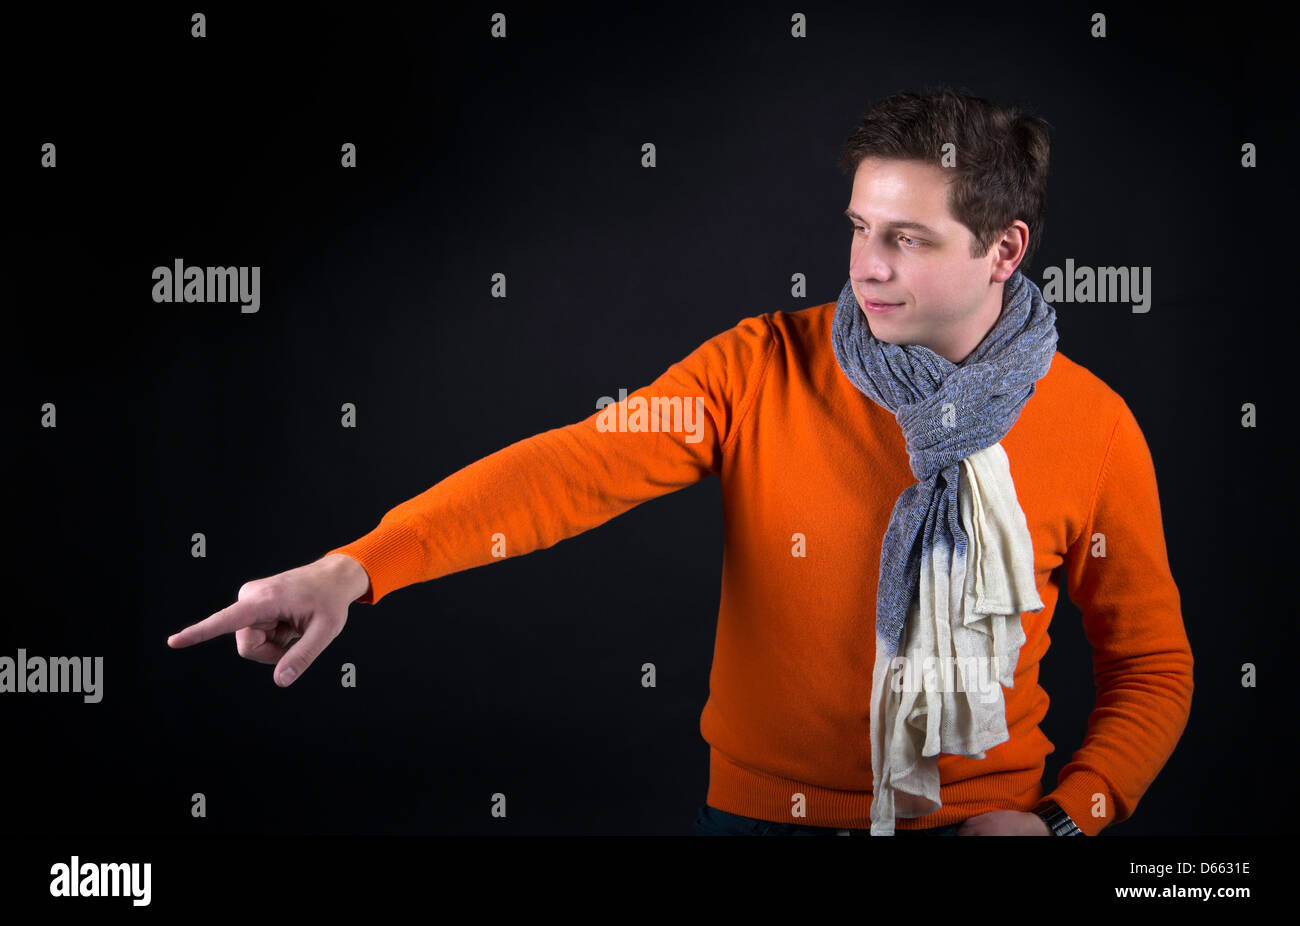 Man on background pointing on something outside frame - Stock Image